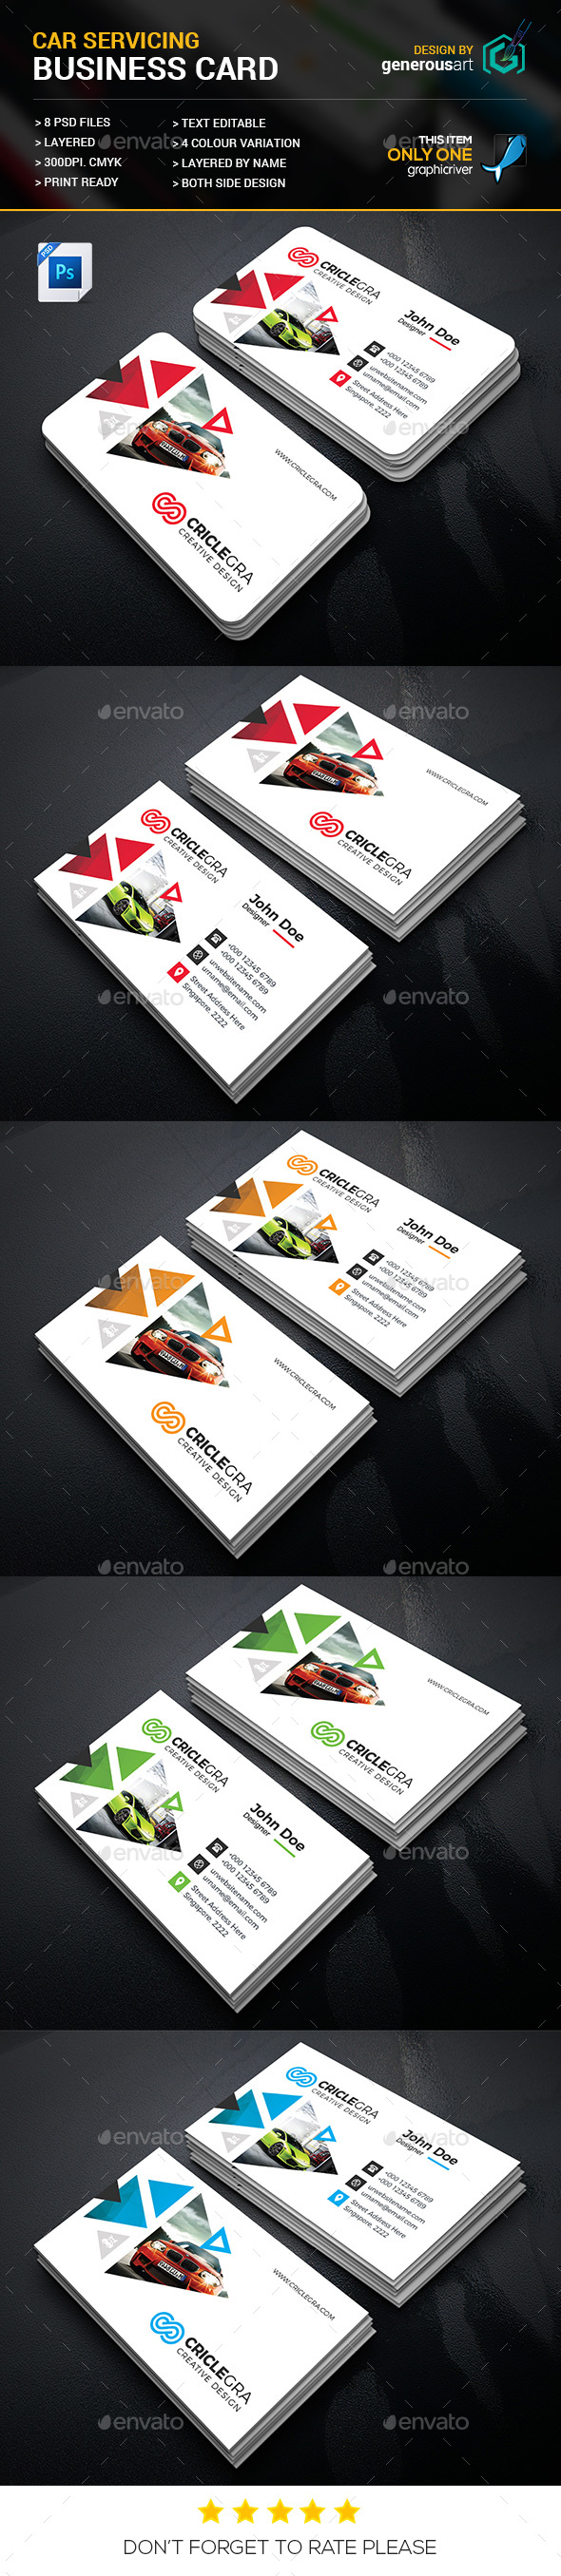 Car Servicing Business Card - Business Cards Print Templates